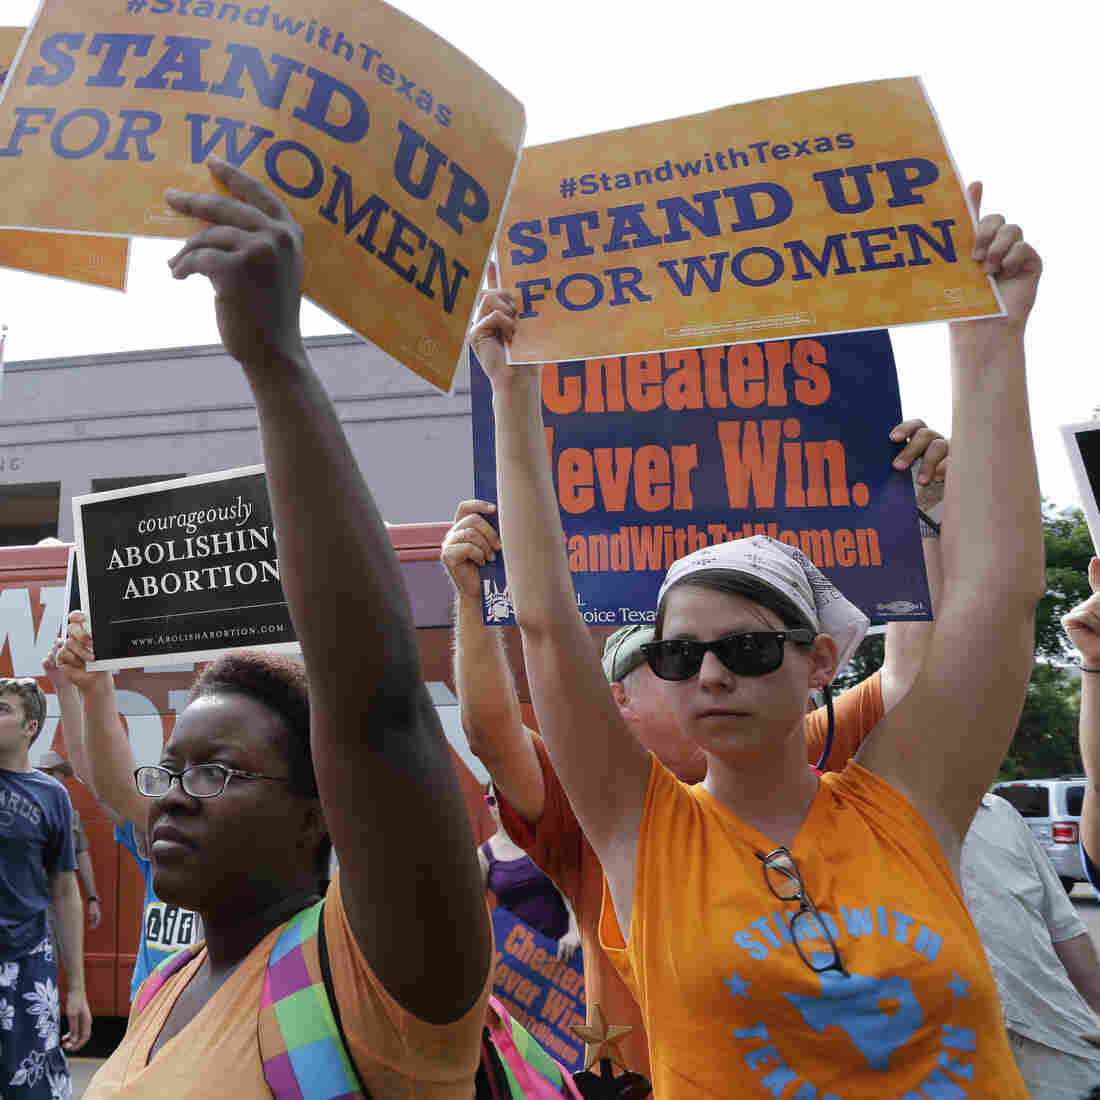 Women's Health Groups Sue Texas Over Its New Abortion Law